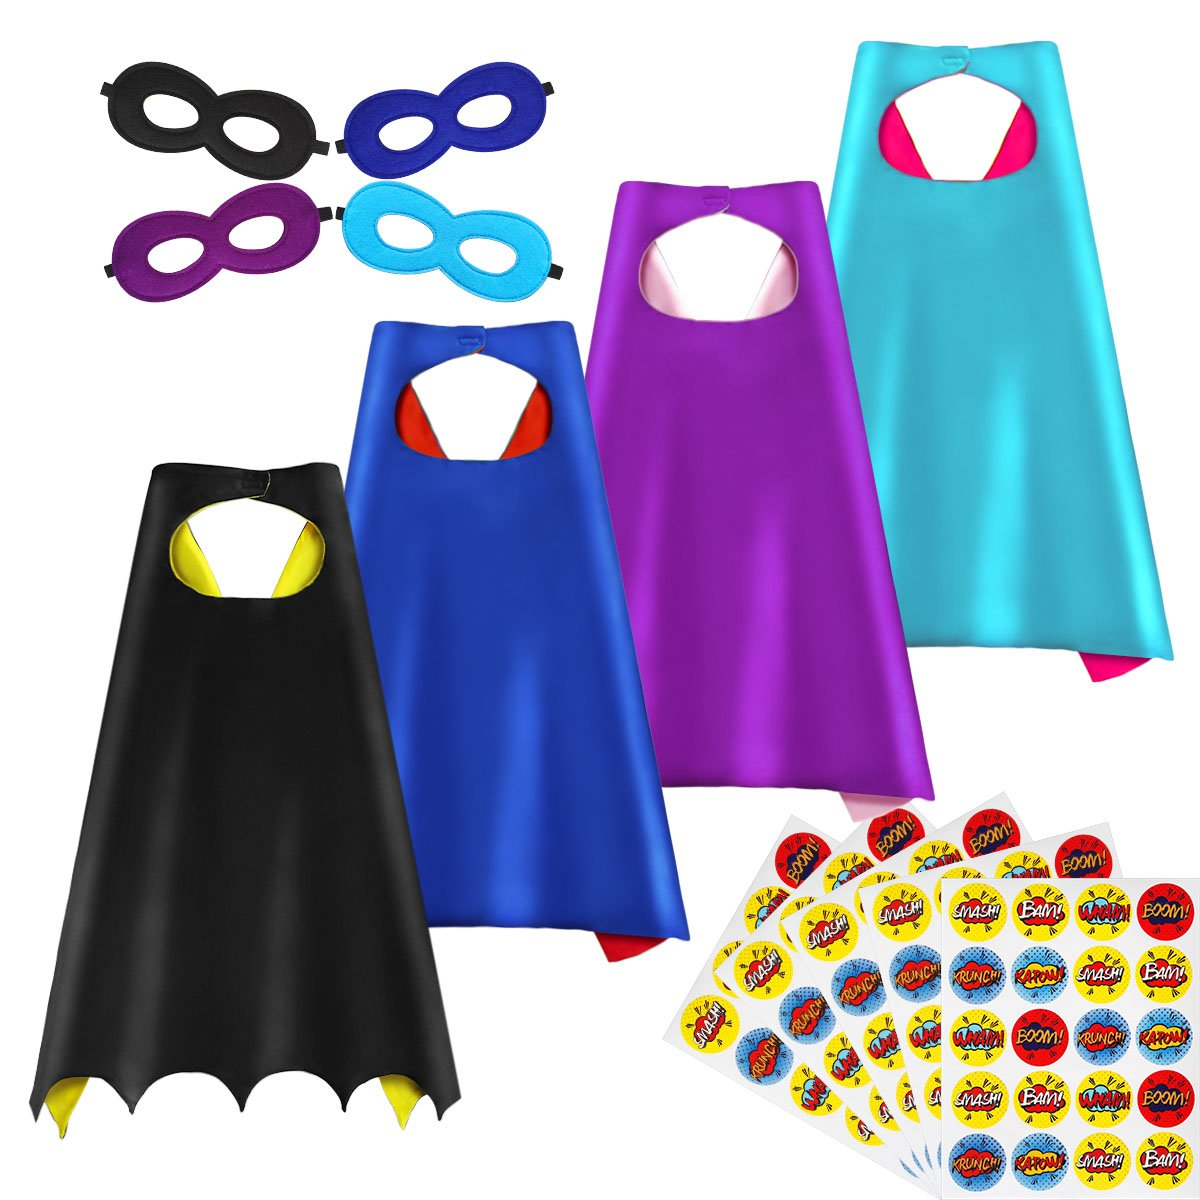 Superhero Capes, DIY Dress up Capes and Mask Set, 4 Packs with 100 Stickers DIY Dress Up Capes and Masks Set TD EASY GO SHOPPING